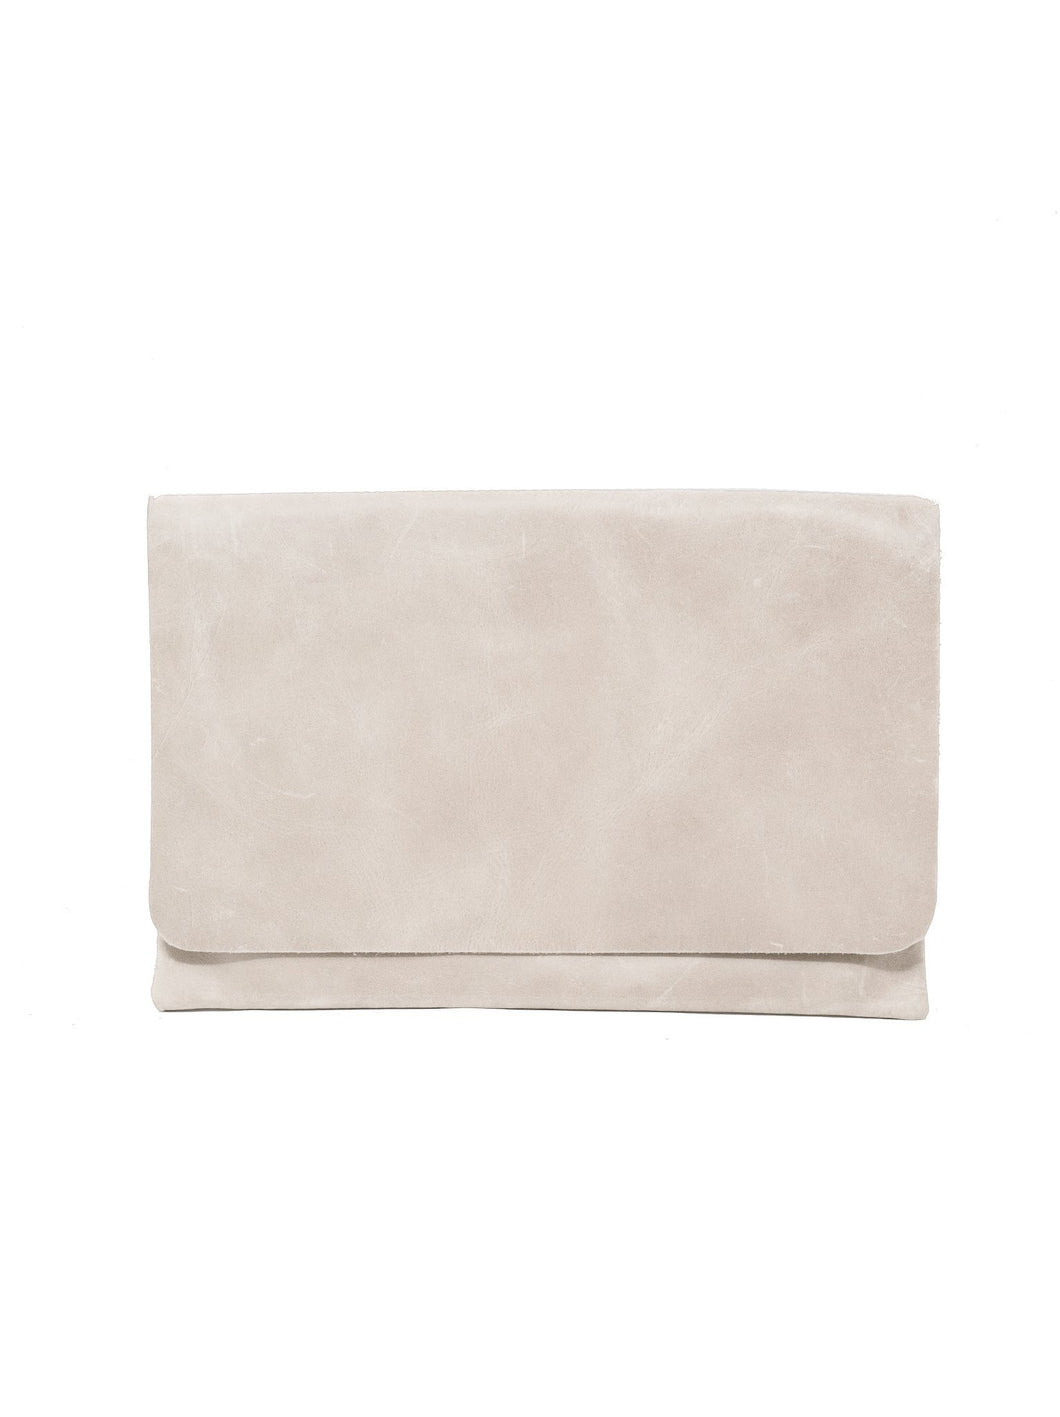 The Mare Zip Clutch by Able